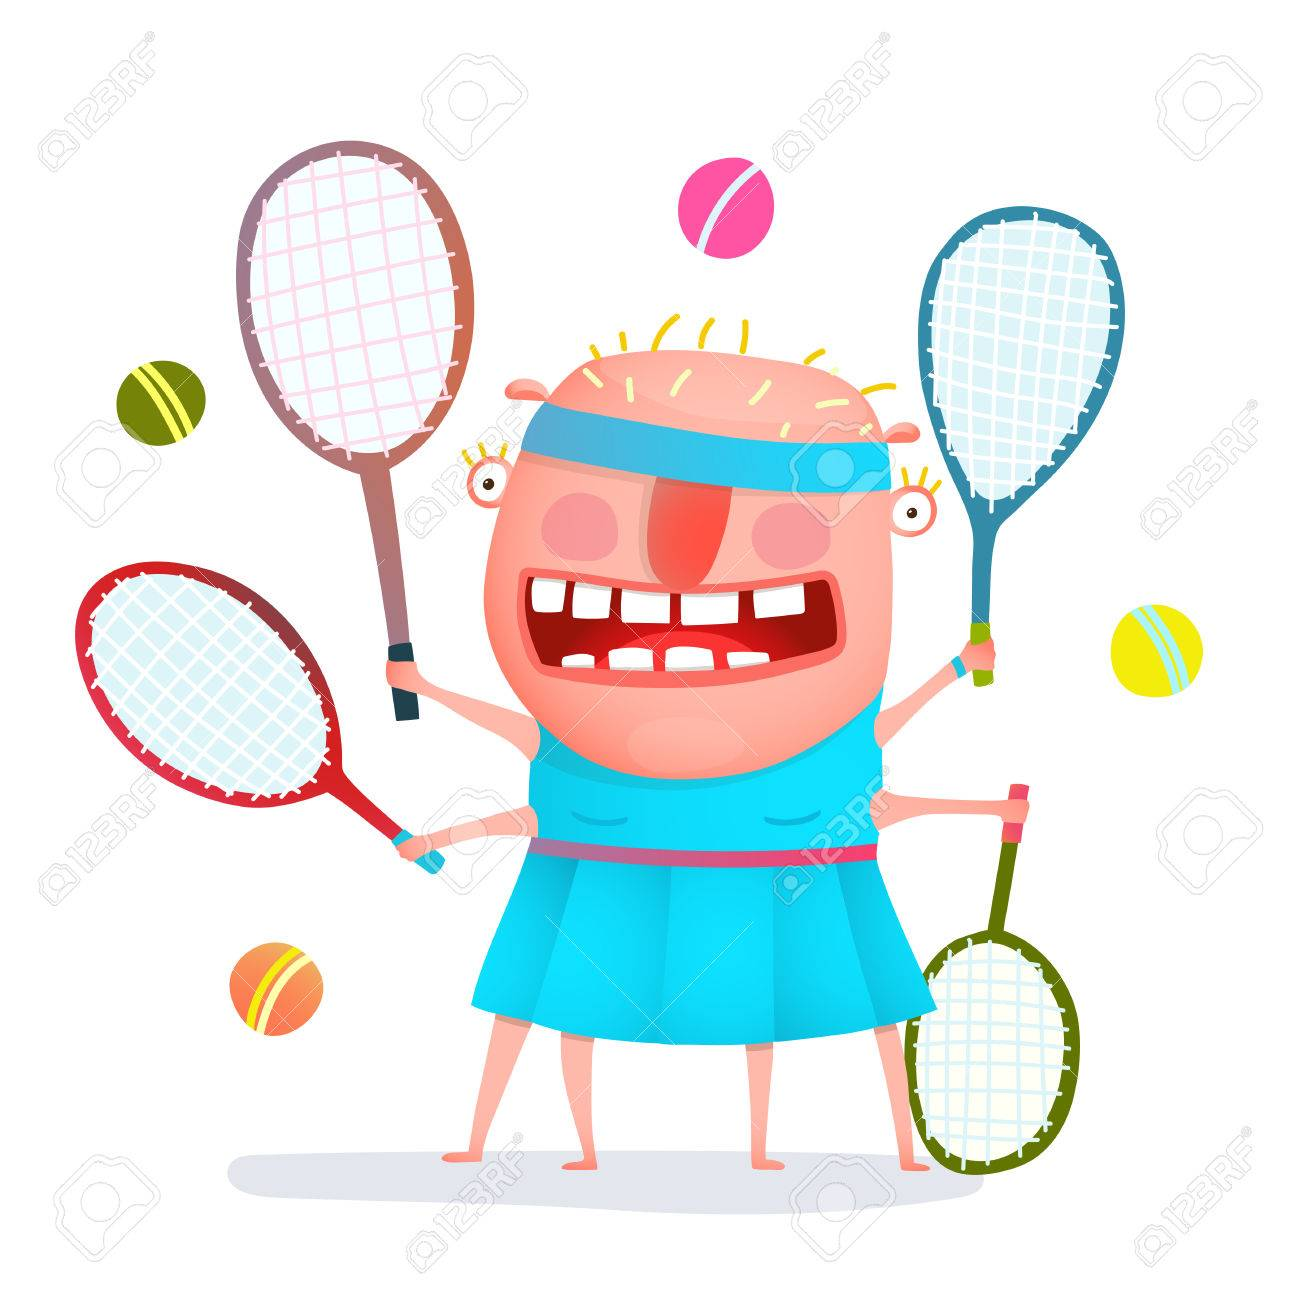 1300x1300 Fun Cartoon Sporty Girl Tennis Player Freaky Style Colorful